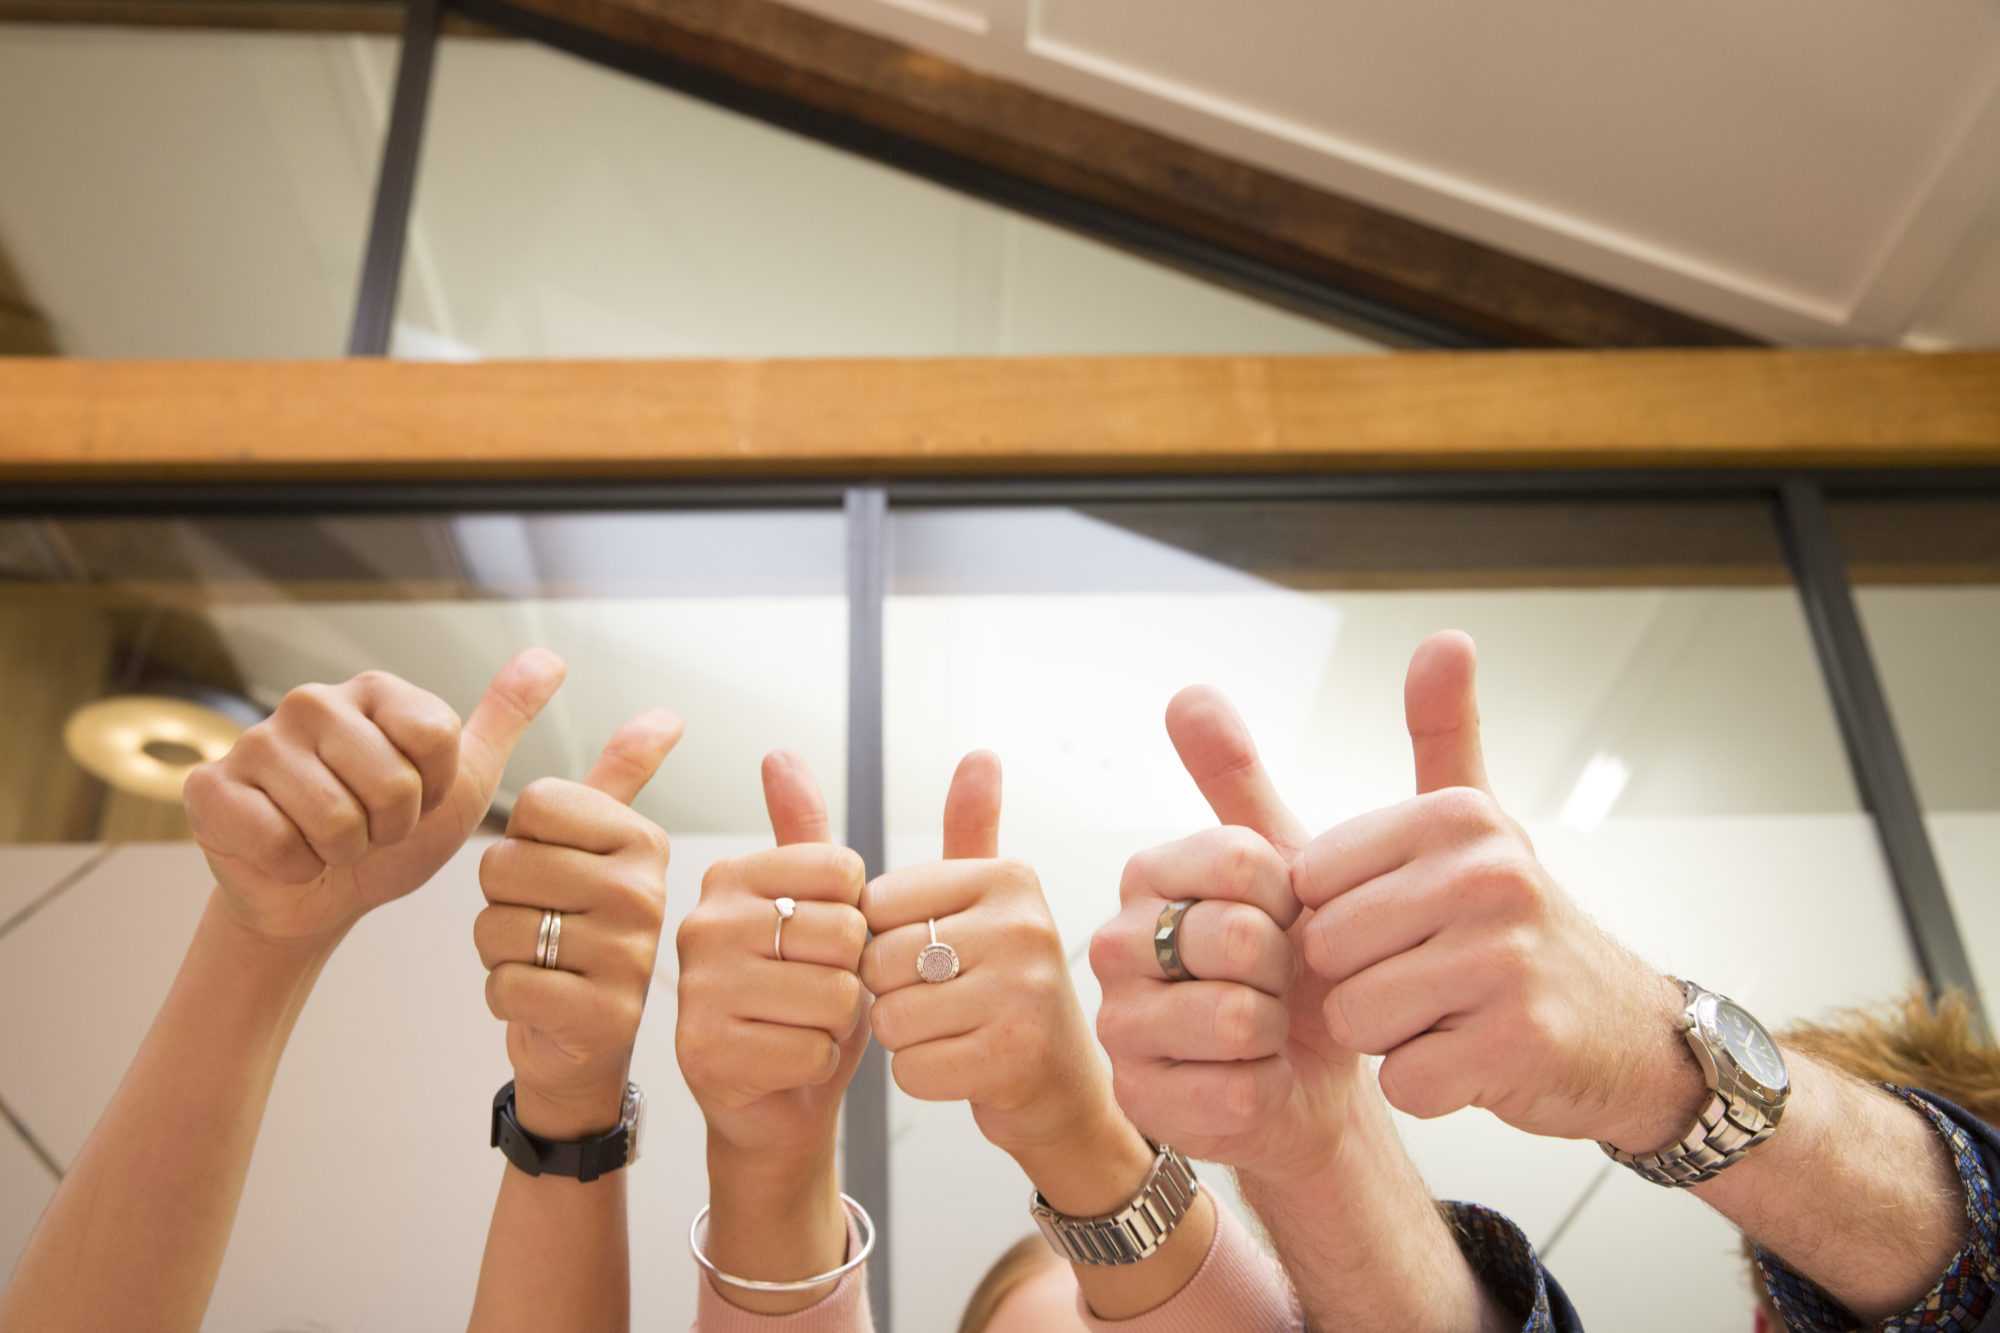 Employees in workplace with thumbs up demonstrating workplace wellness